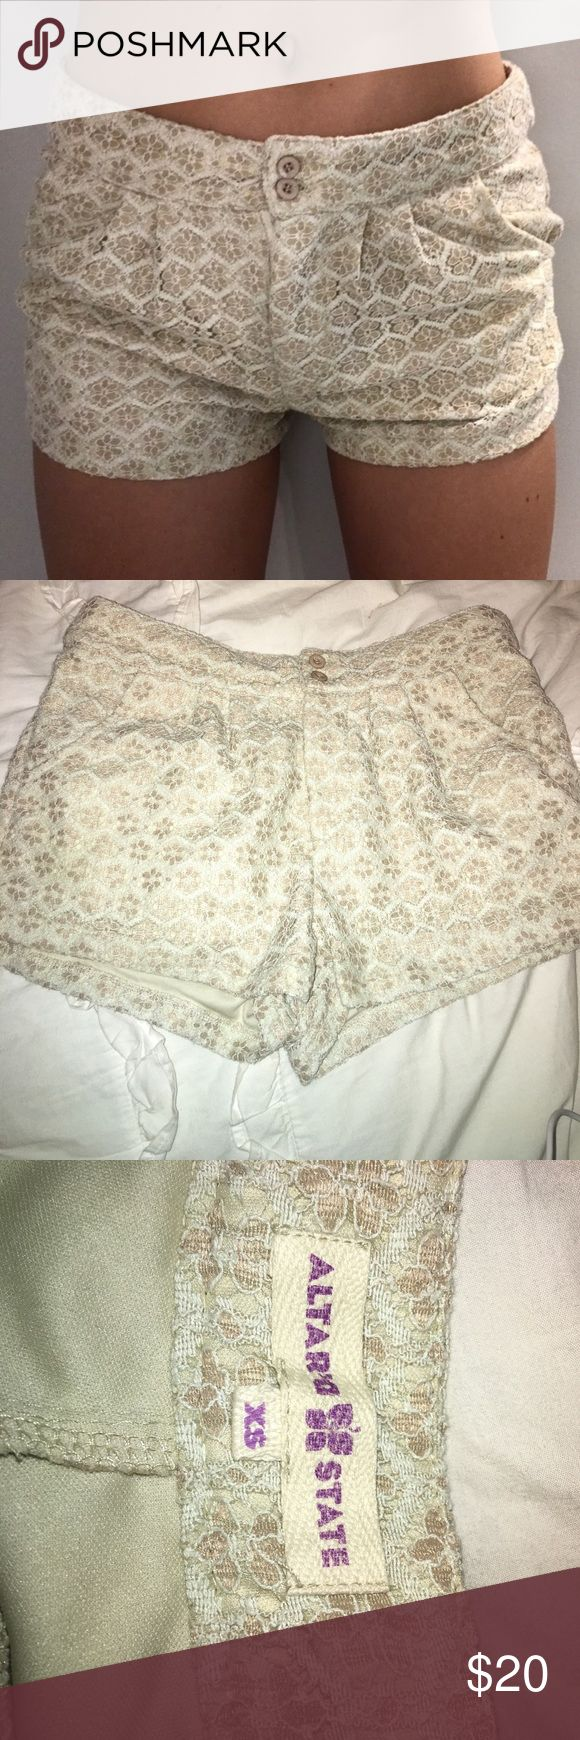 cream lace shorts cream lace shorts in perfect condition only worn once or twice!! Altar'd State Shorts